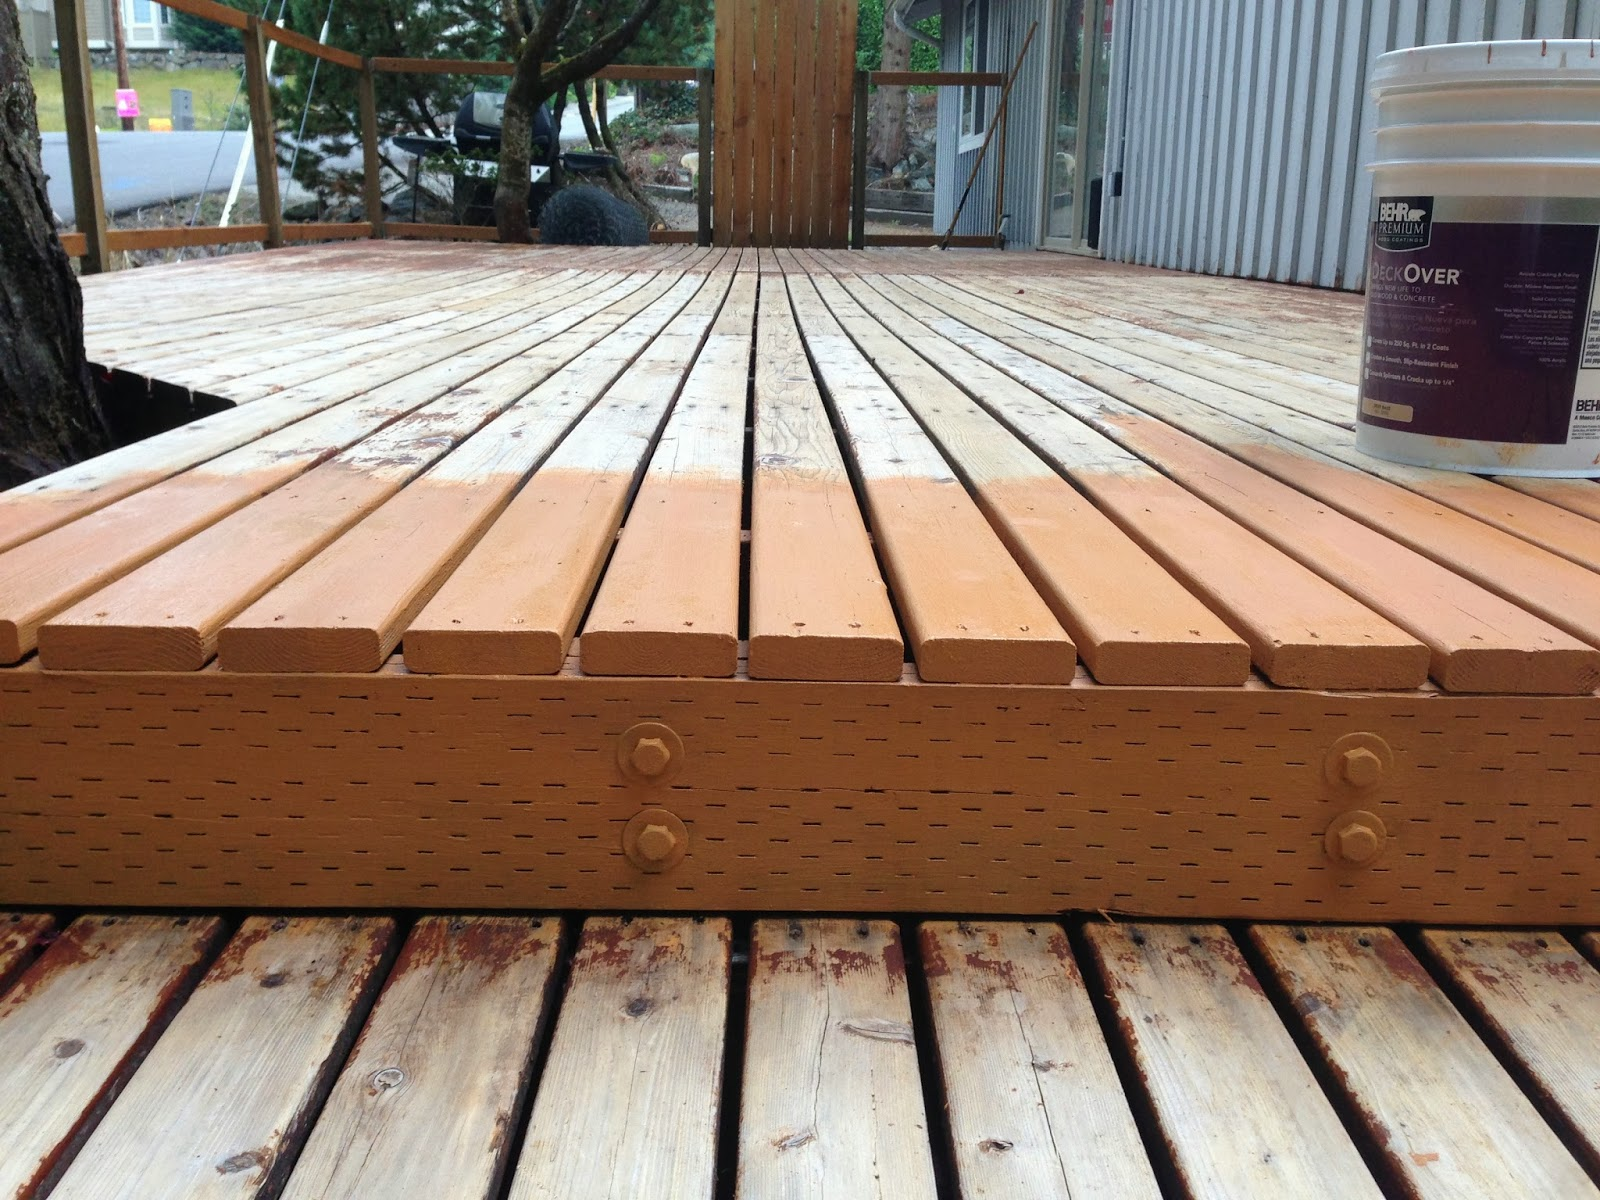 Deck Staining - Behr Deckover | Before, After, Mac & Cheese